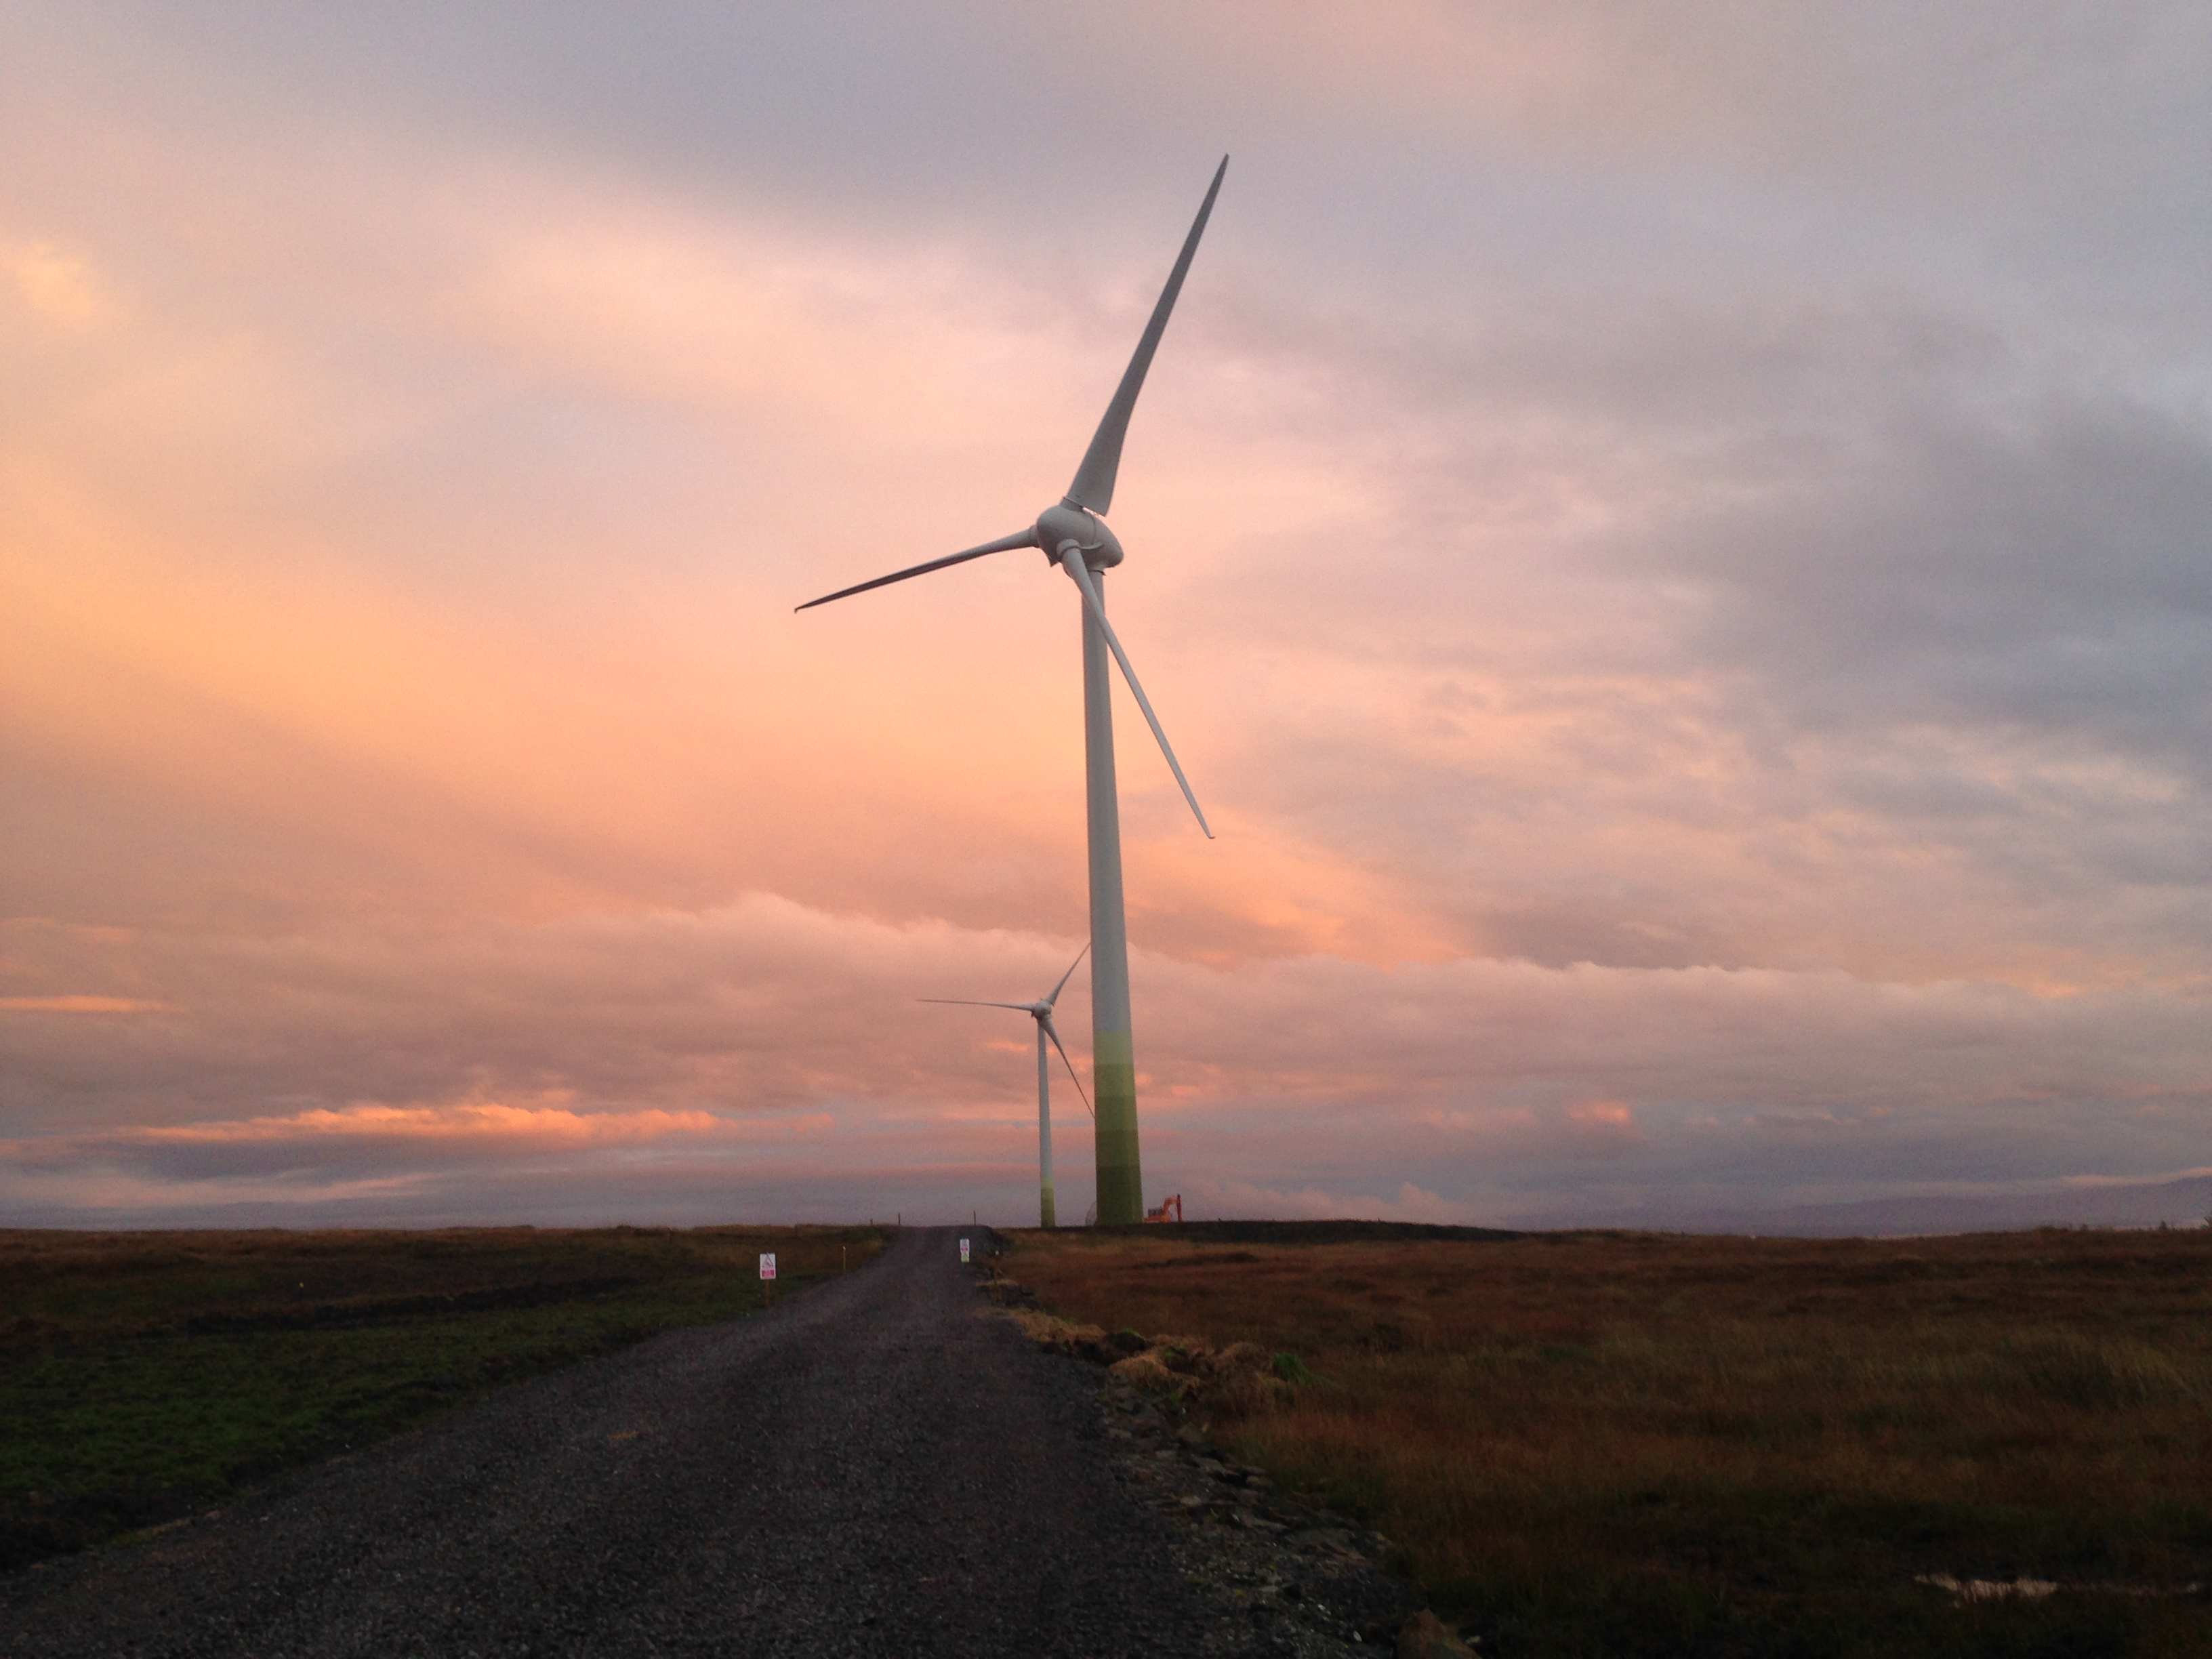 ICAN Acoustics assessment of Wind Turbine noise